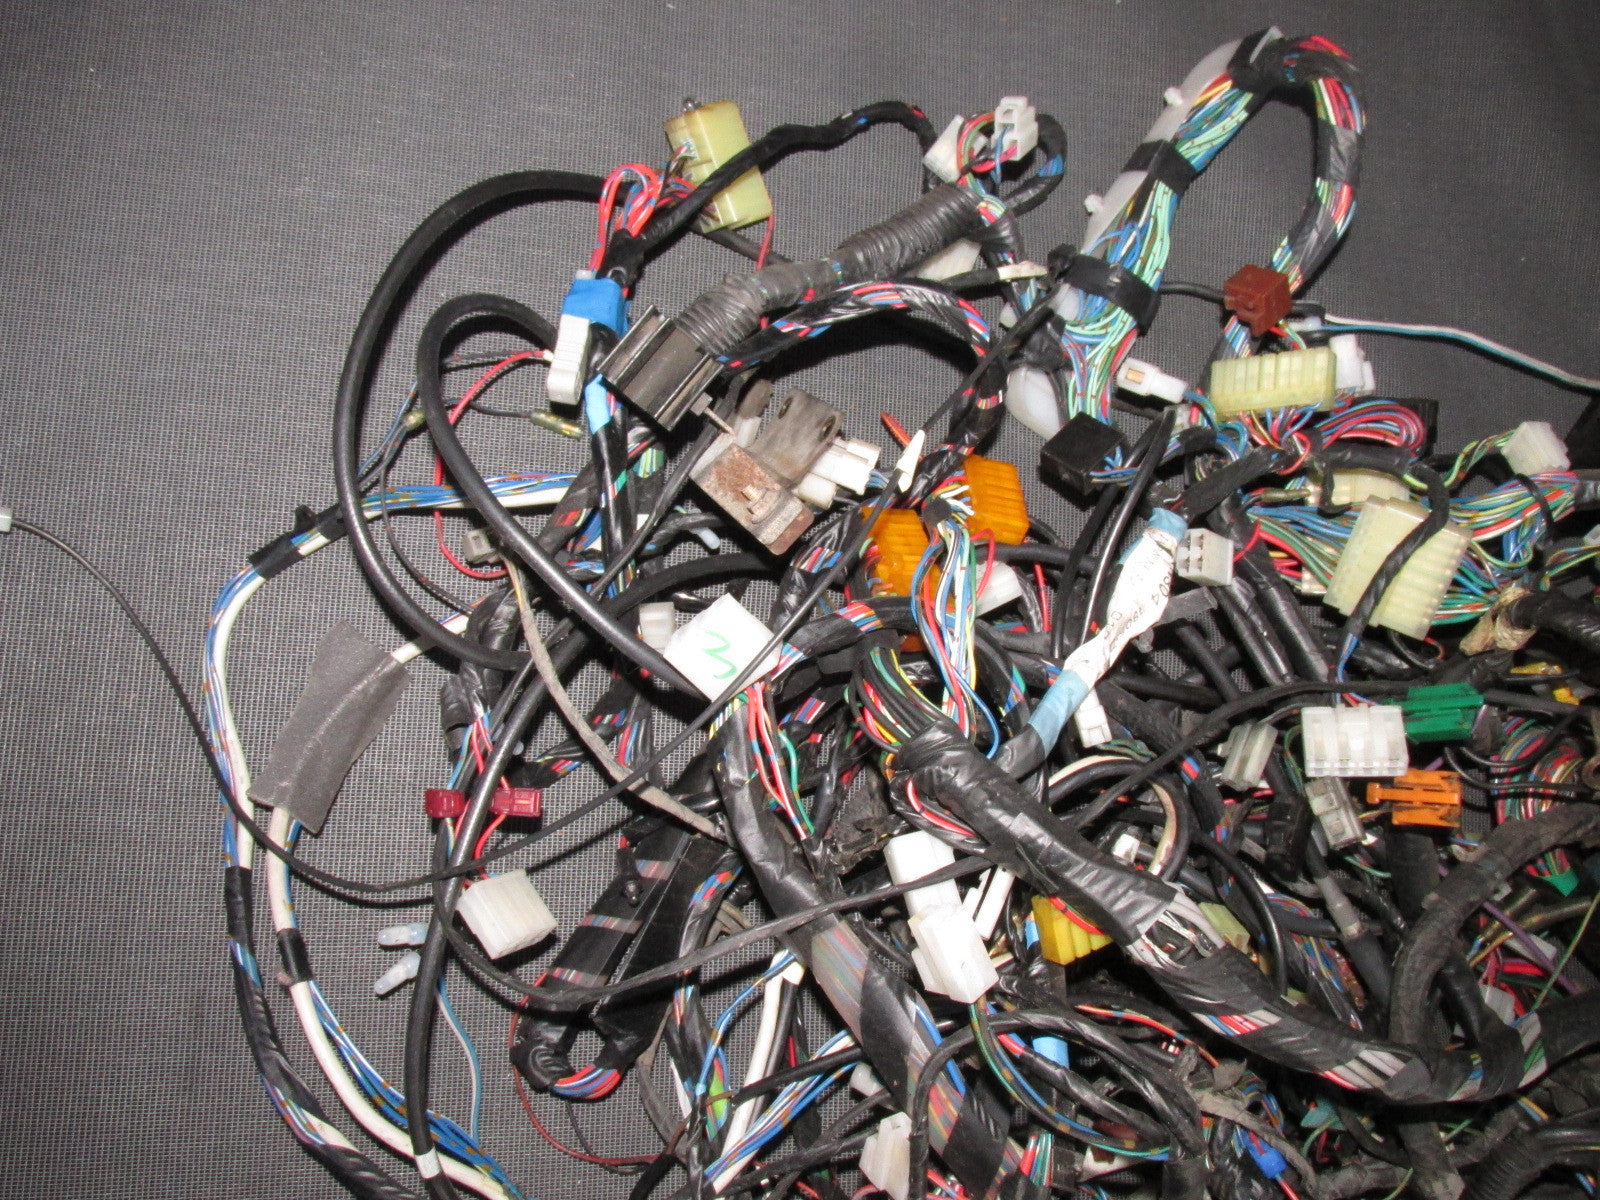 IMG_5539_294b6d6e 7acb 4e38 bafb f97fad301c0c?v=1447885520 84 85 mazda rx7 oem 13b gsl se m t complete wiring harness 13b wiring harness at honlapkeszites.co